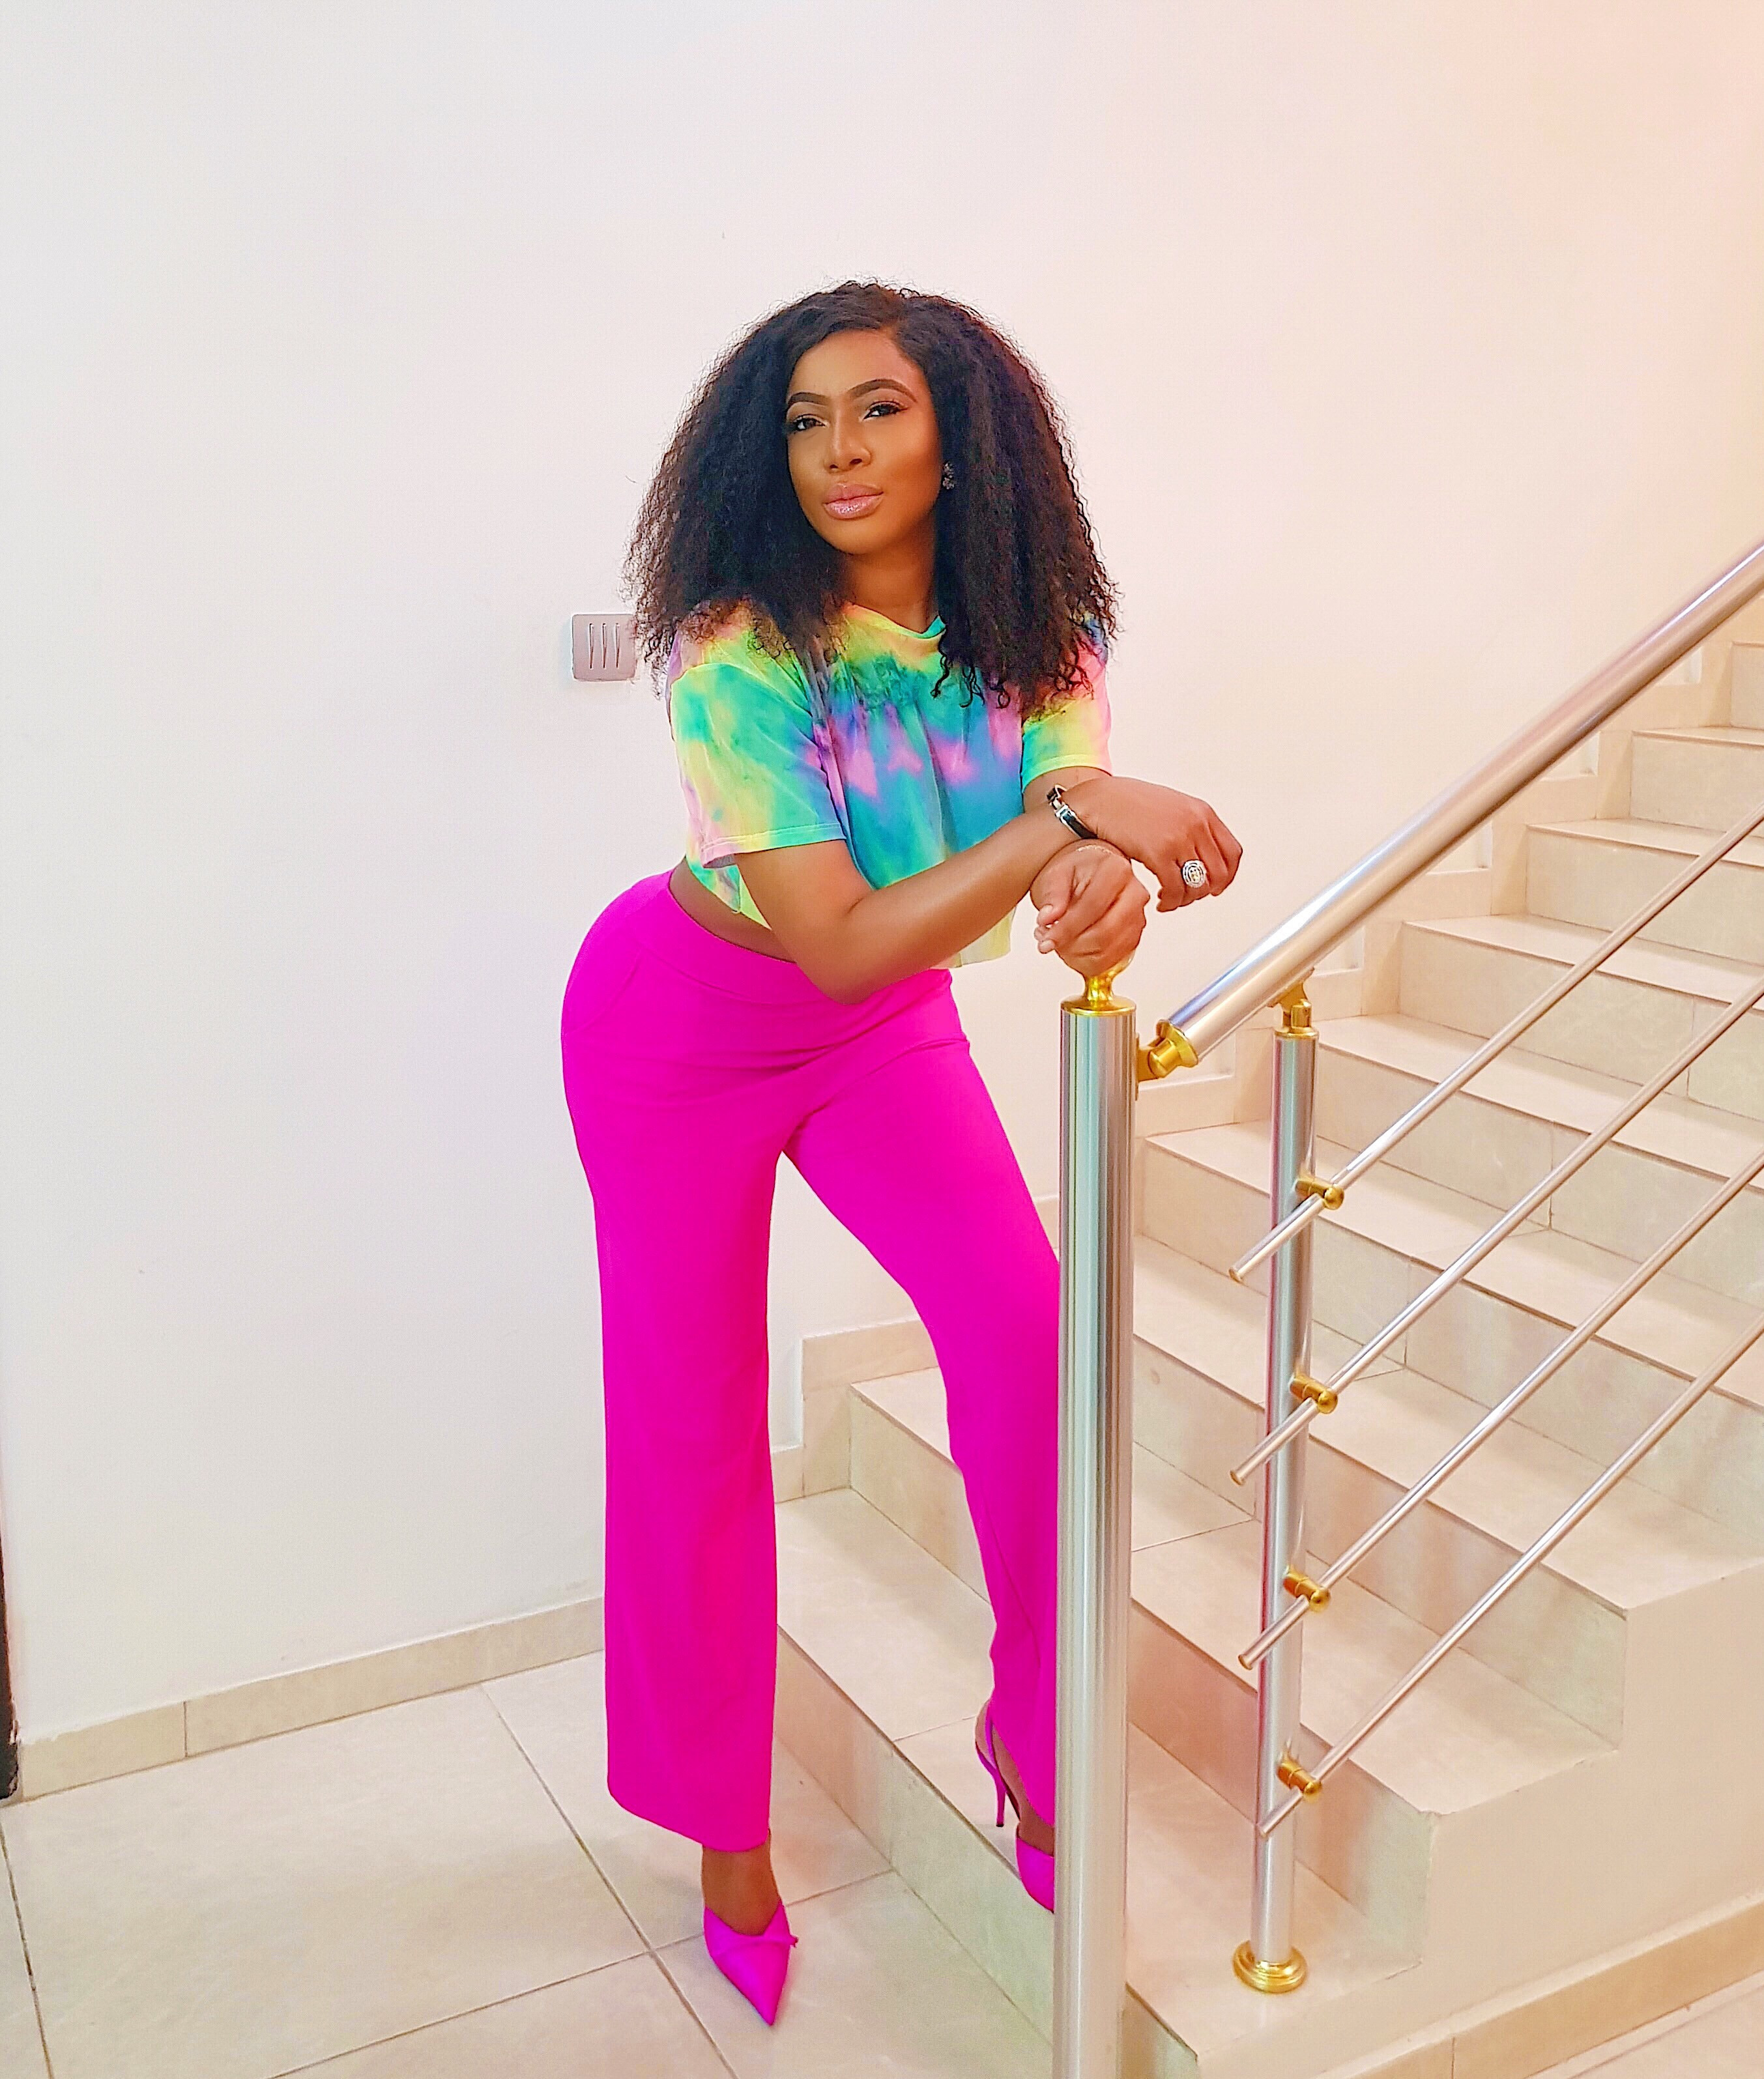 Chika Ike shows off her curves in new photos